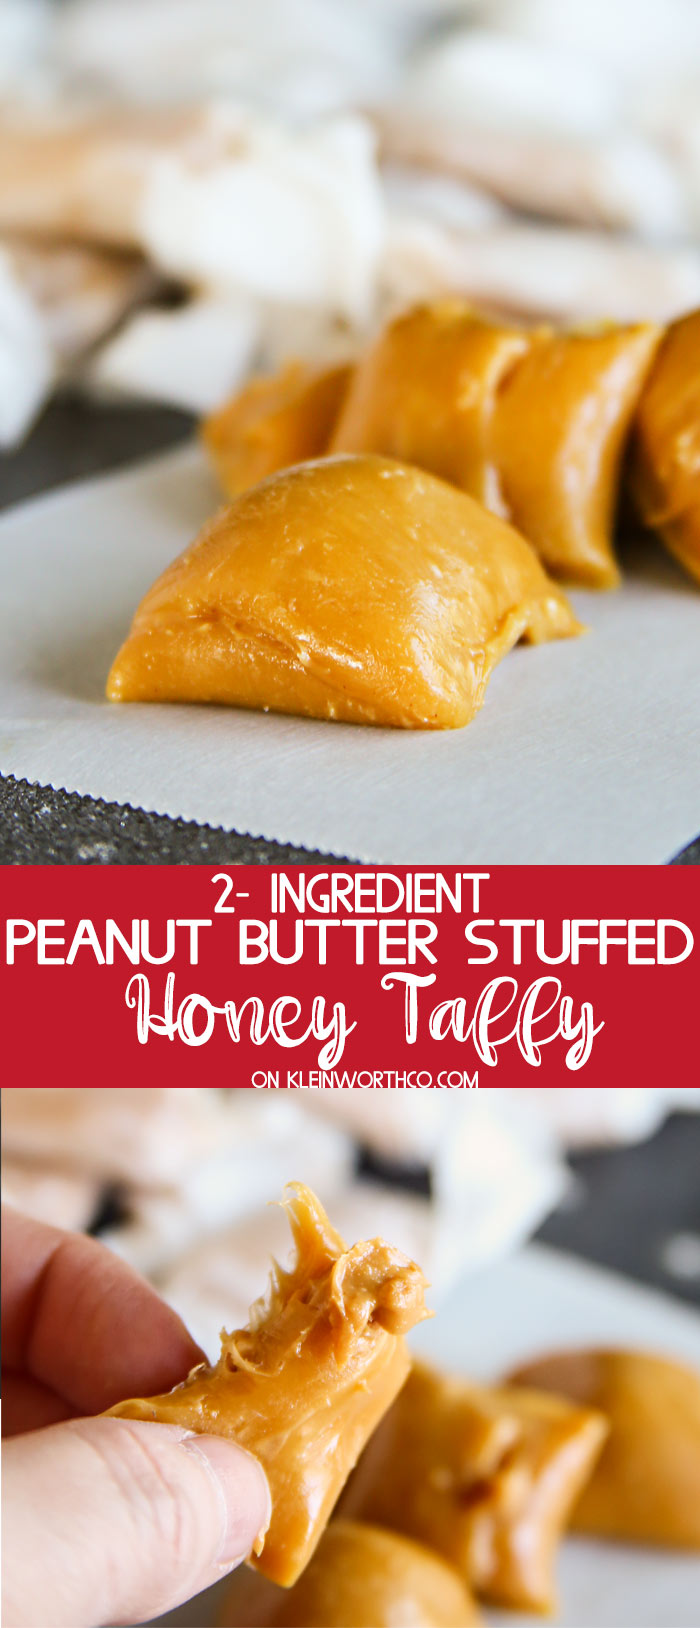 Peanut Butter Stuffed Honey Taffy